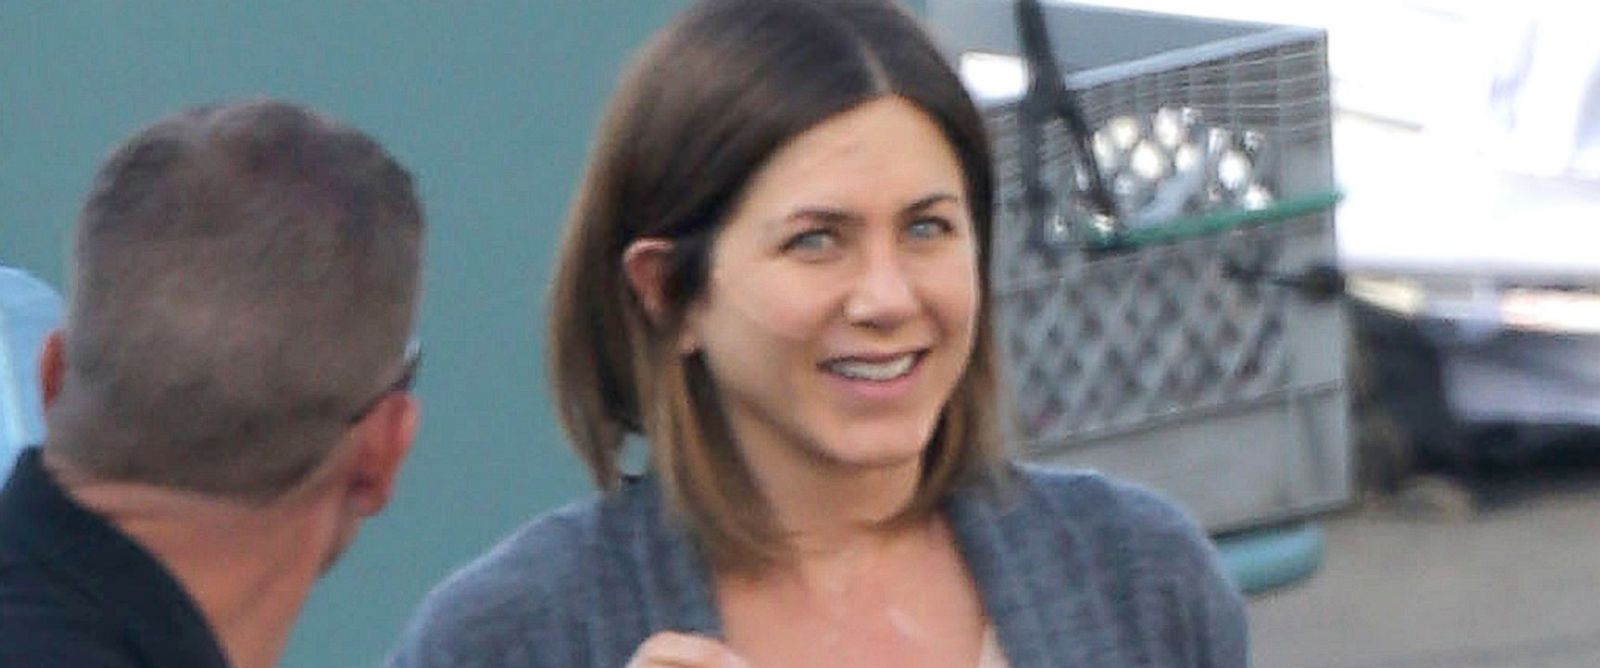 "PHOTO: Jennifer Aniston has a few laughs with one of the crew members on the set of her new movie ""Cake""."